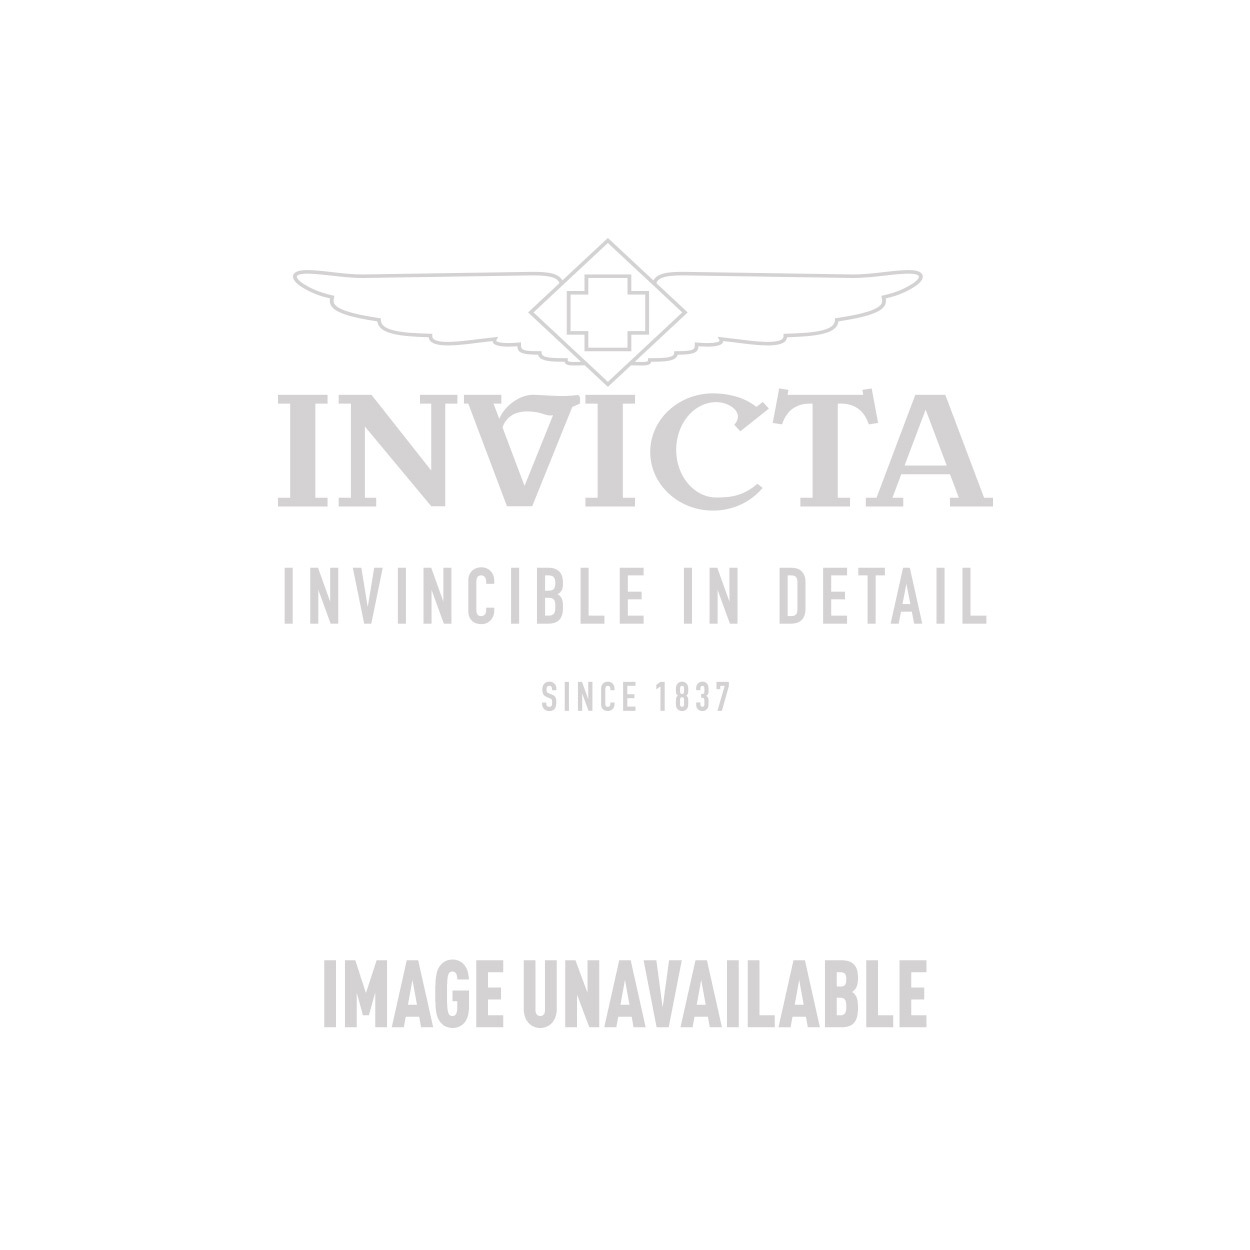 Invicta Venom Swiss Made Quartz Watch - Gunmetal, Stainless Steel case Stainless Steel band - Model 16809